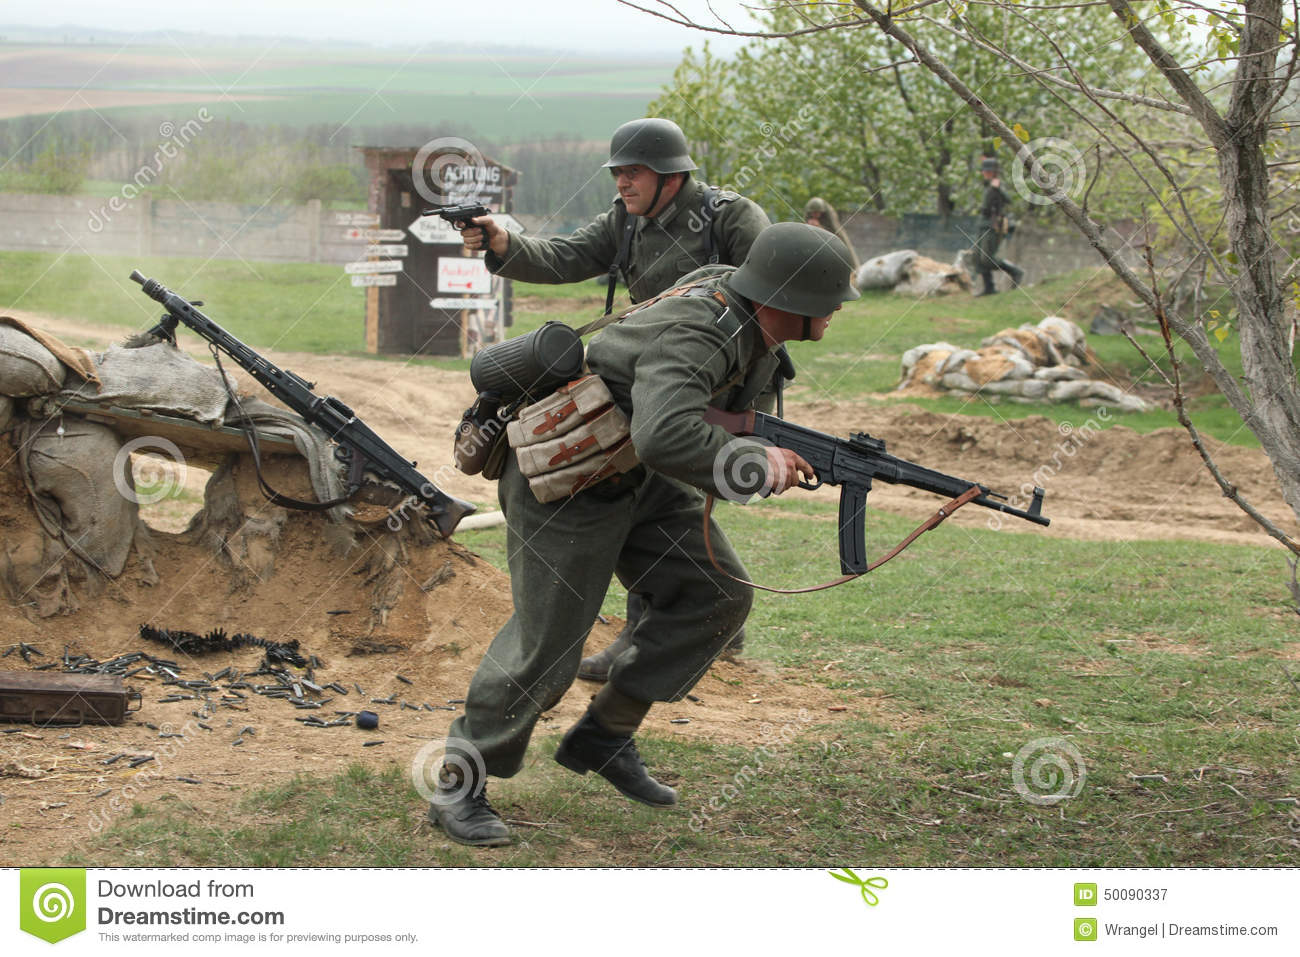 Re-enactment of the WWII Battle at Orechov